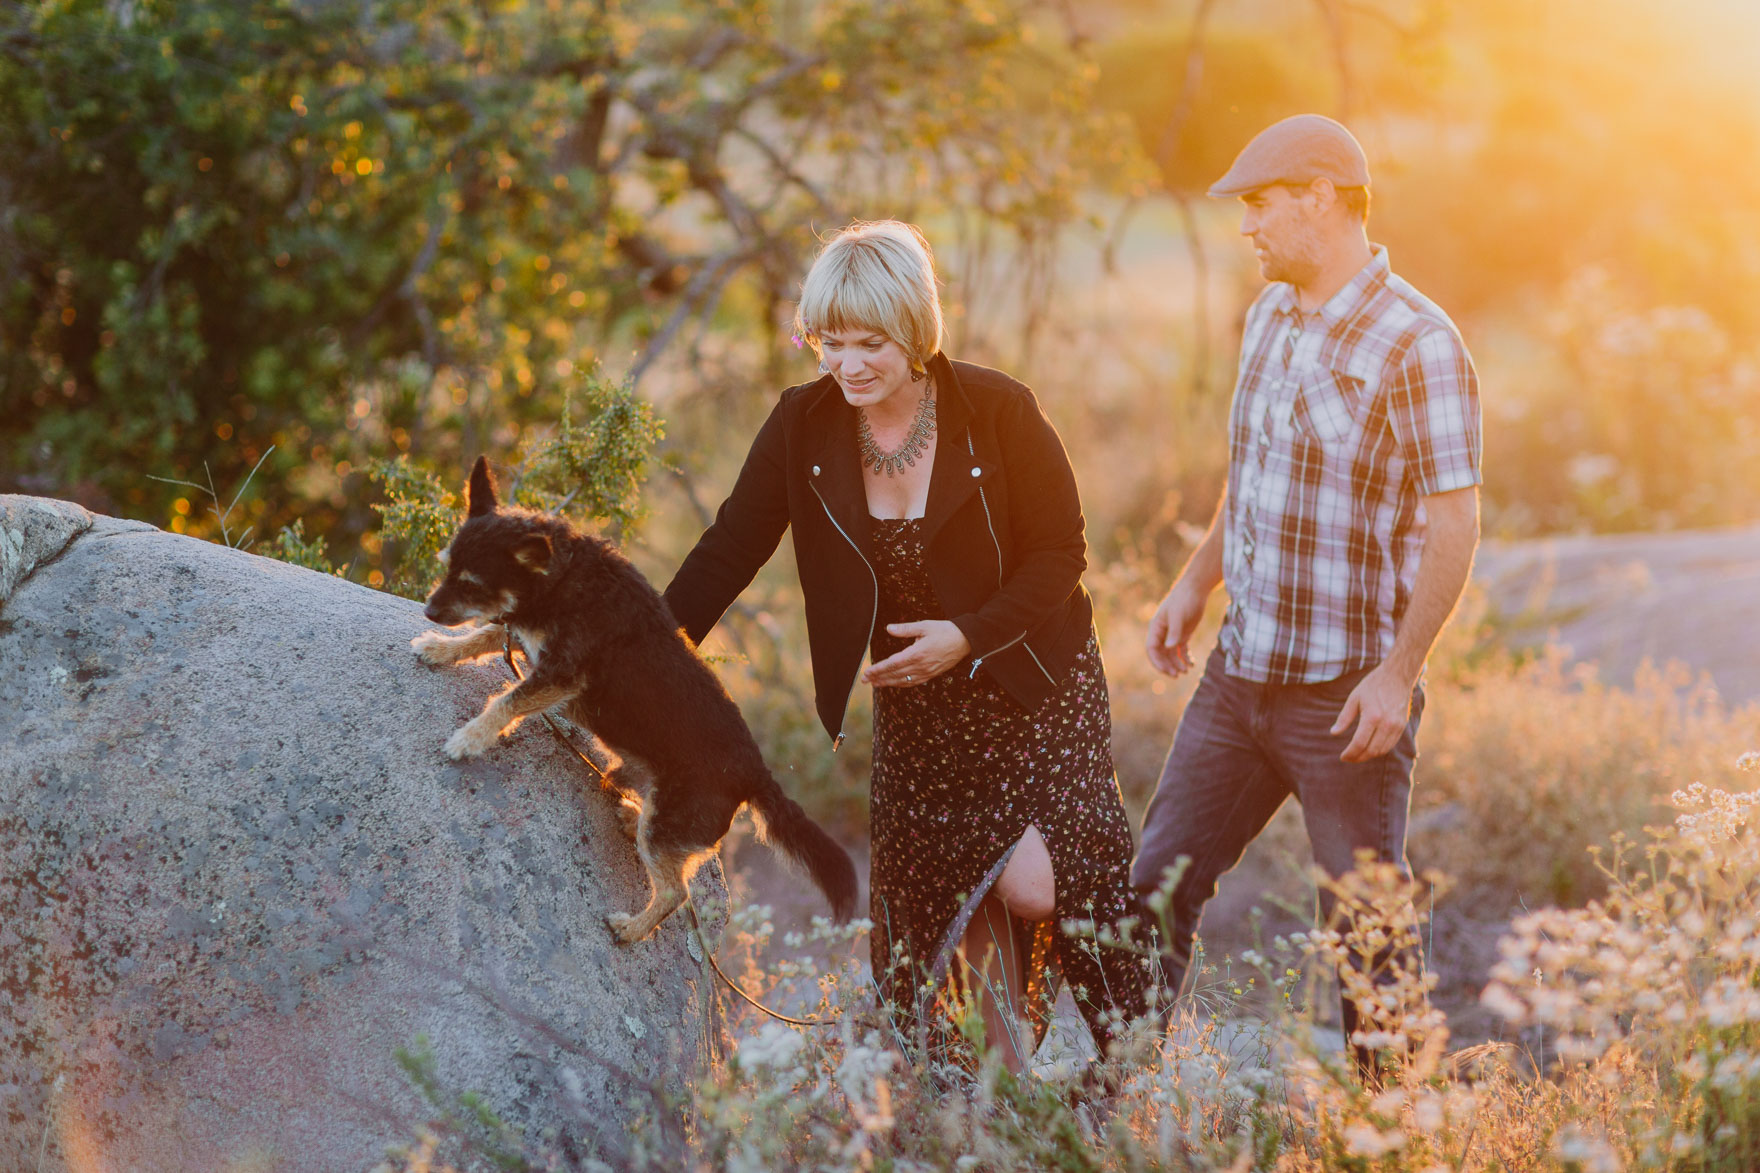 Rustic Beer & Pup Excursion – Photo by Let's Frolic Together